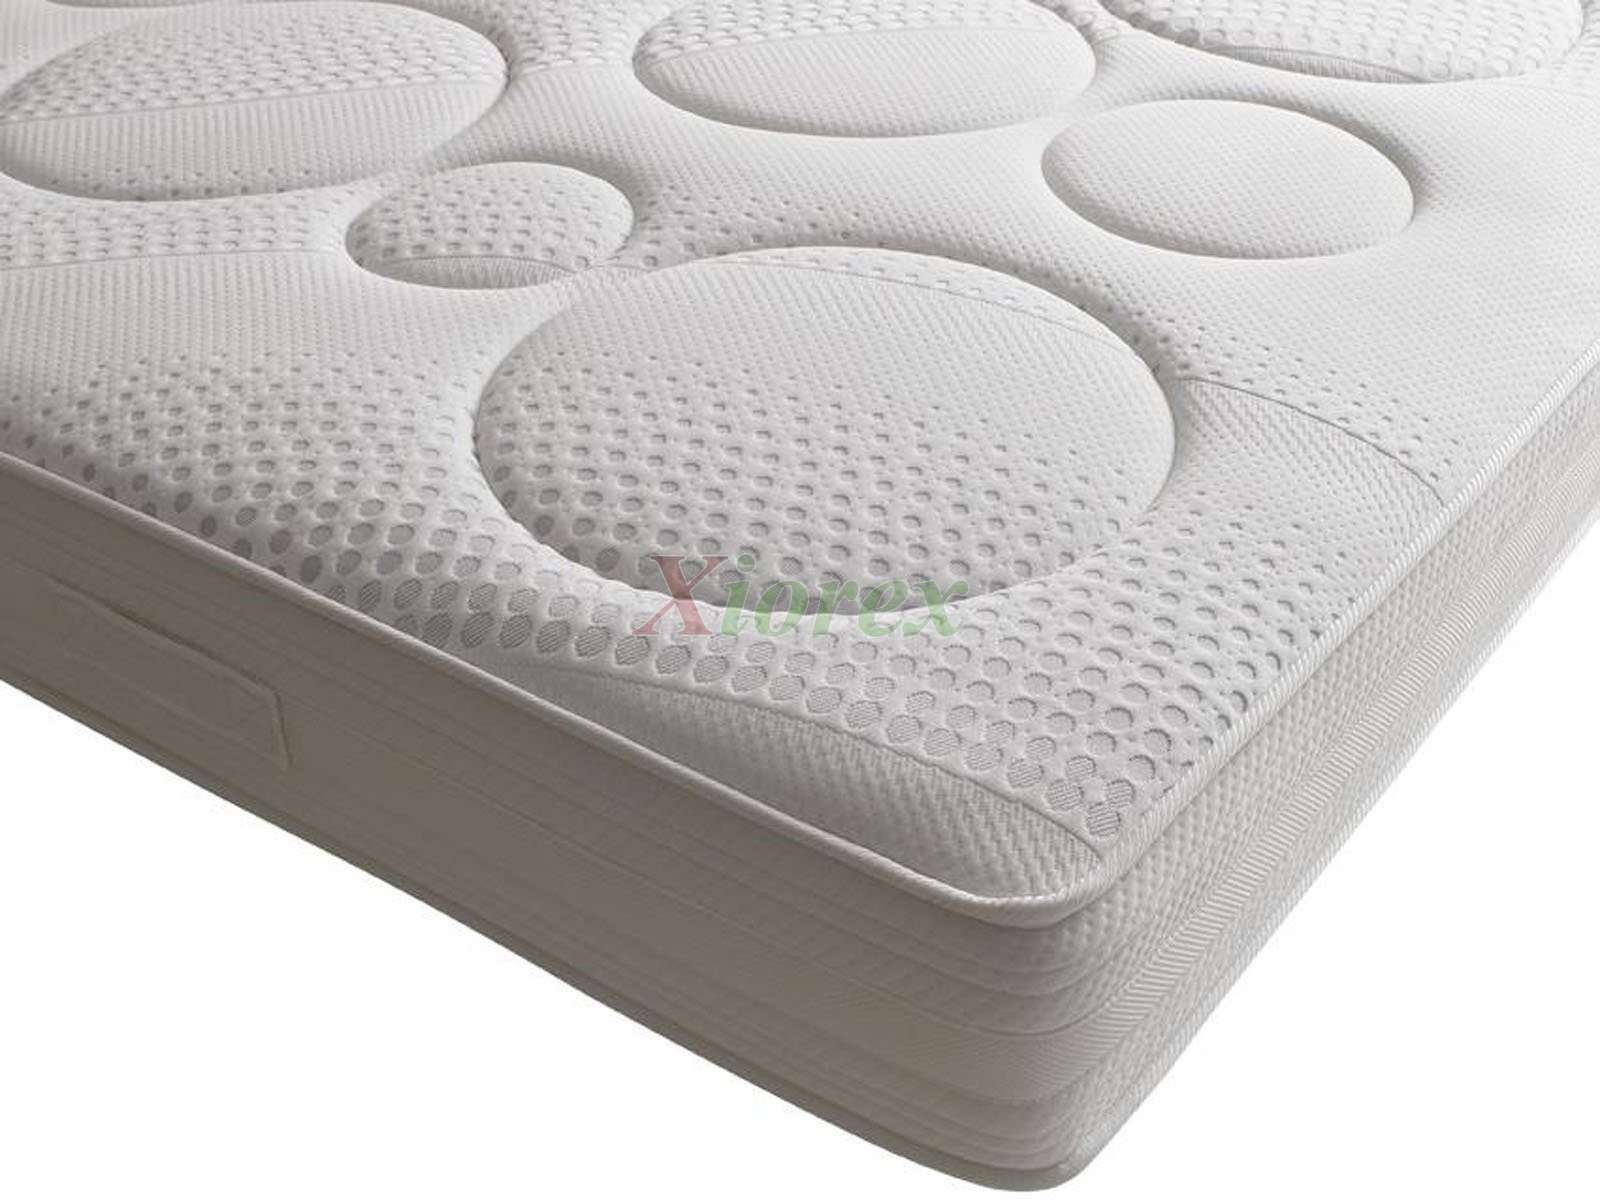 Foam Mattresses The Best Memory Foam Mattresses Guaranteed Or Your Money Back Top Rated Memory